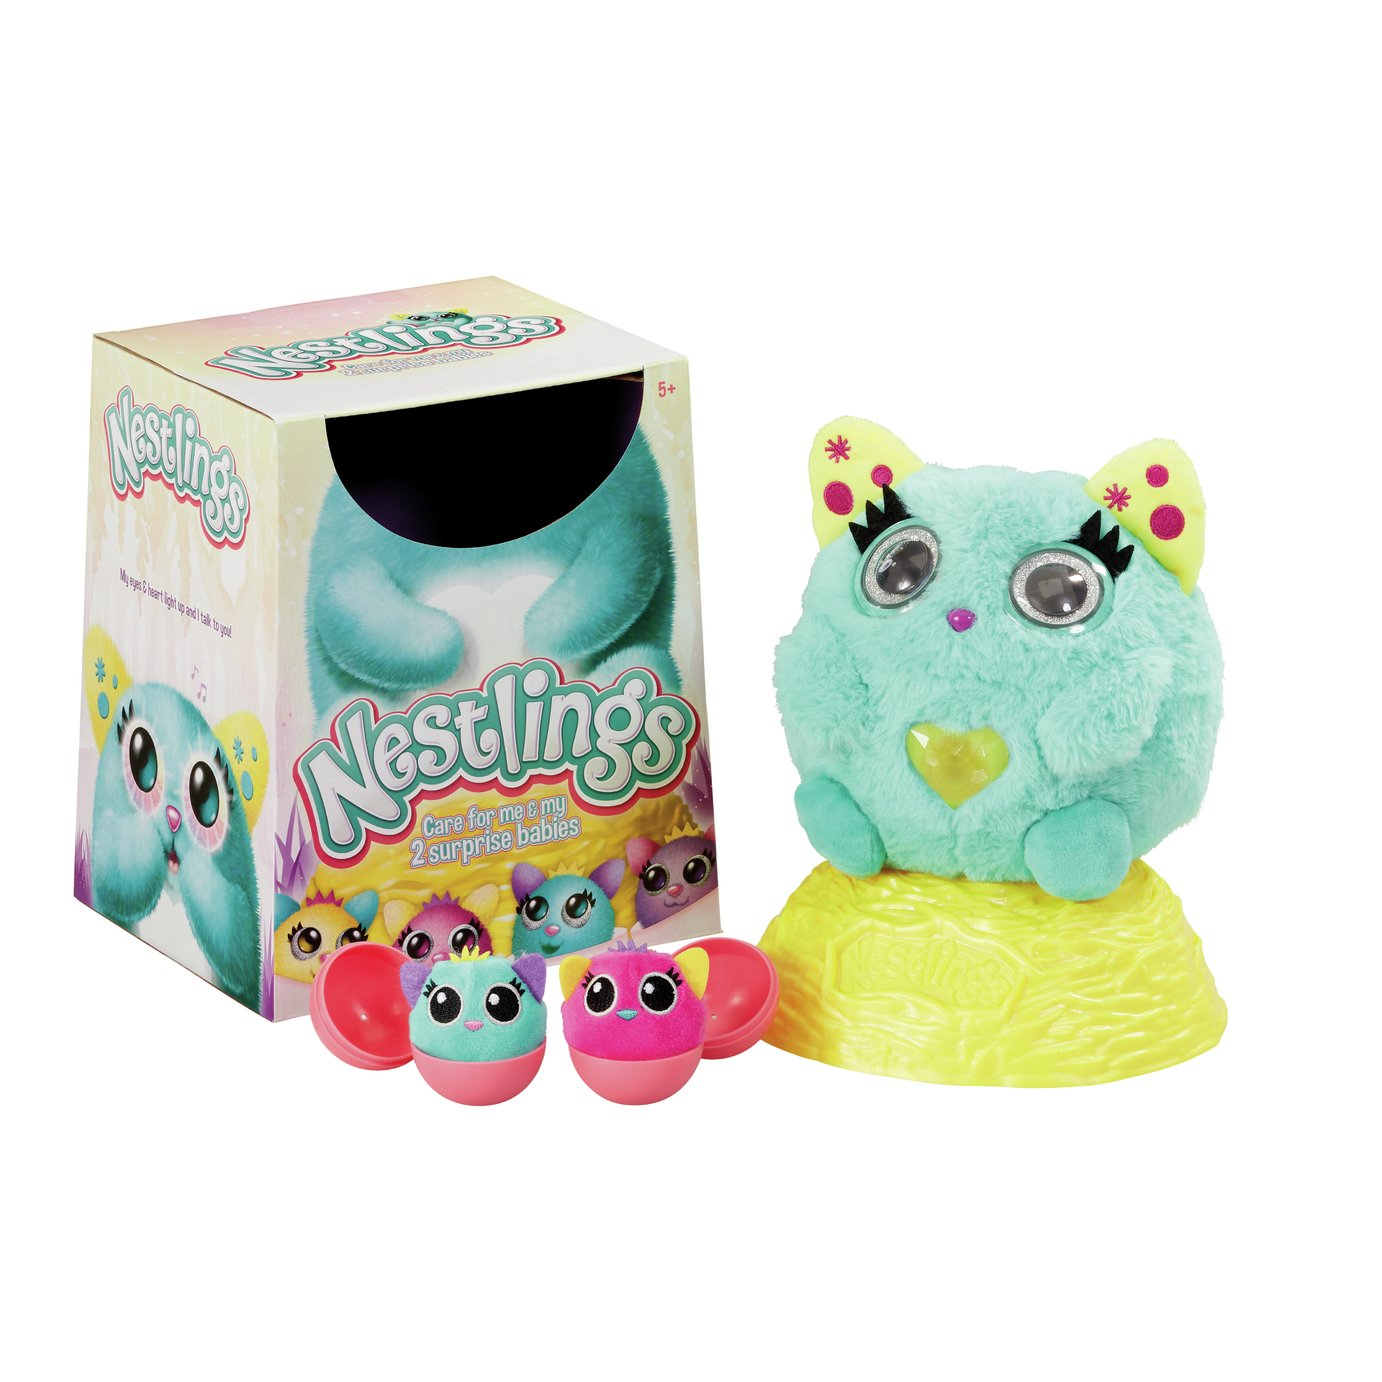 Nestlings Teal Series 1 Figures